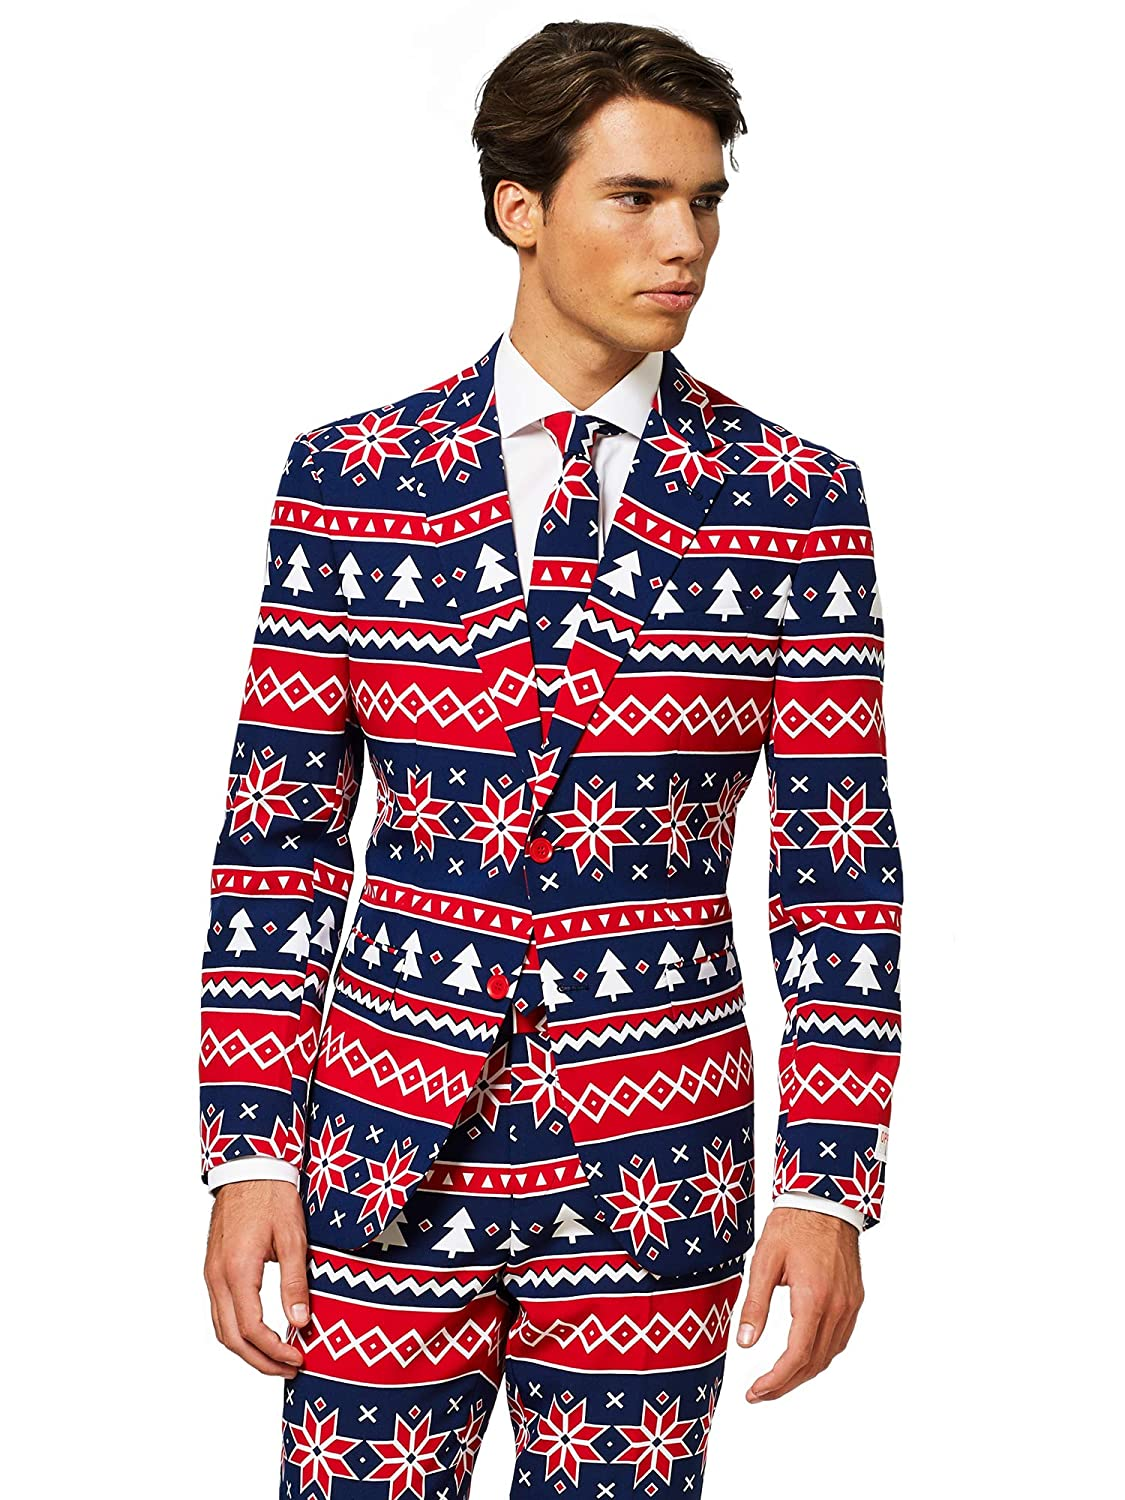 OppoSuits Christmas Suits for Men in Different Prints – Ugly Xmas Sweater Costumes Include Jacket Pants & Tie OSUI-0073-EU46-Parent